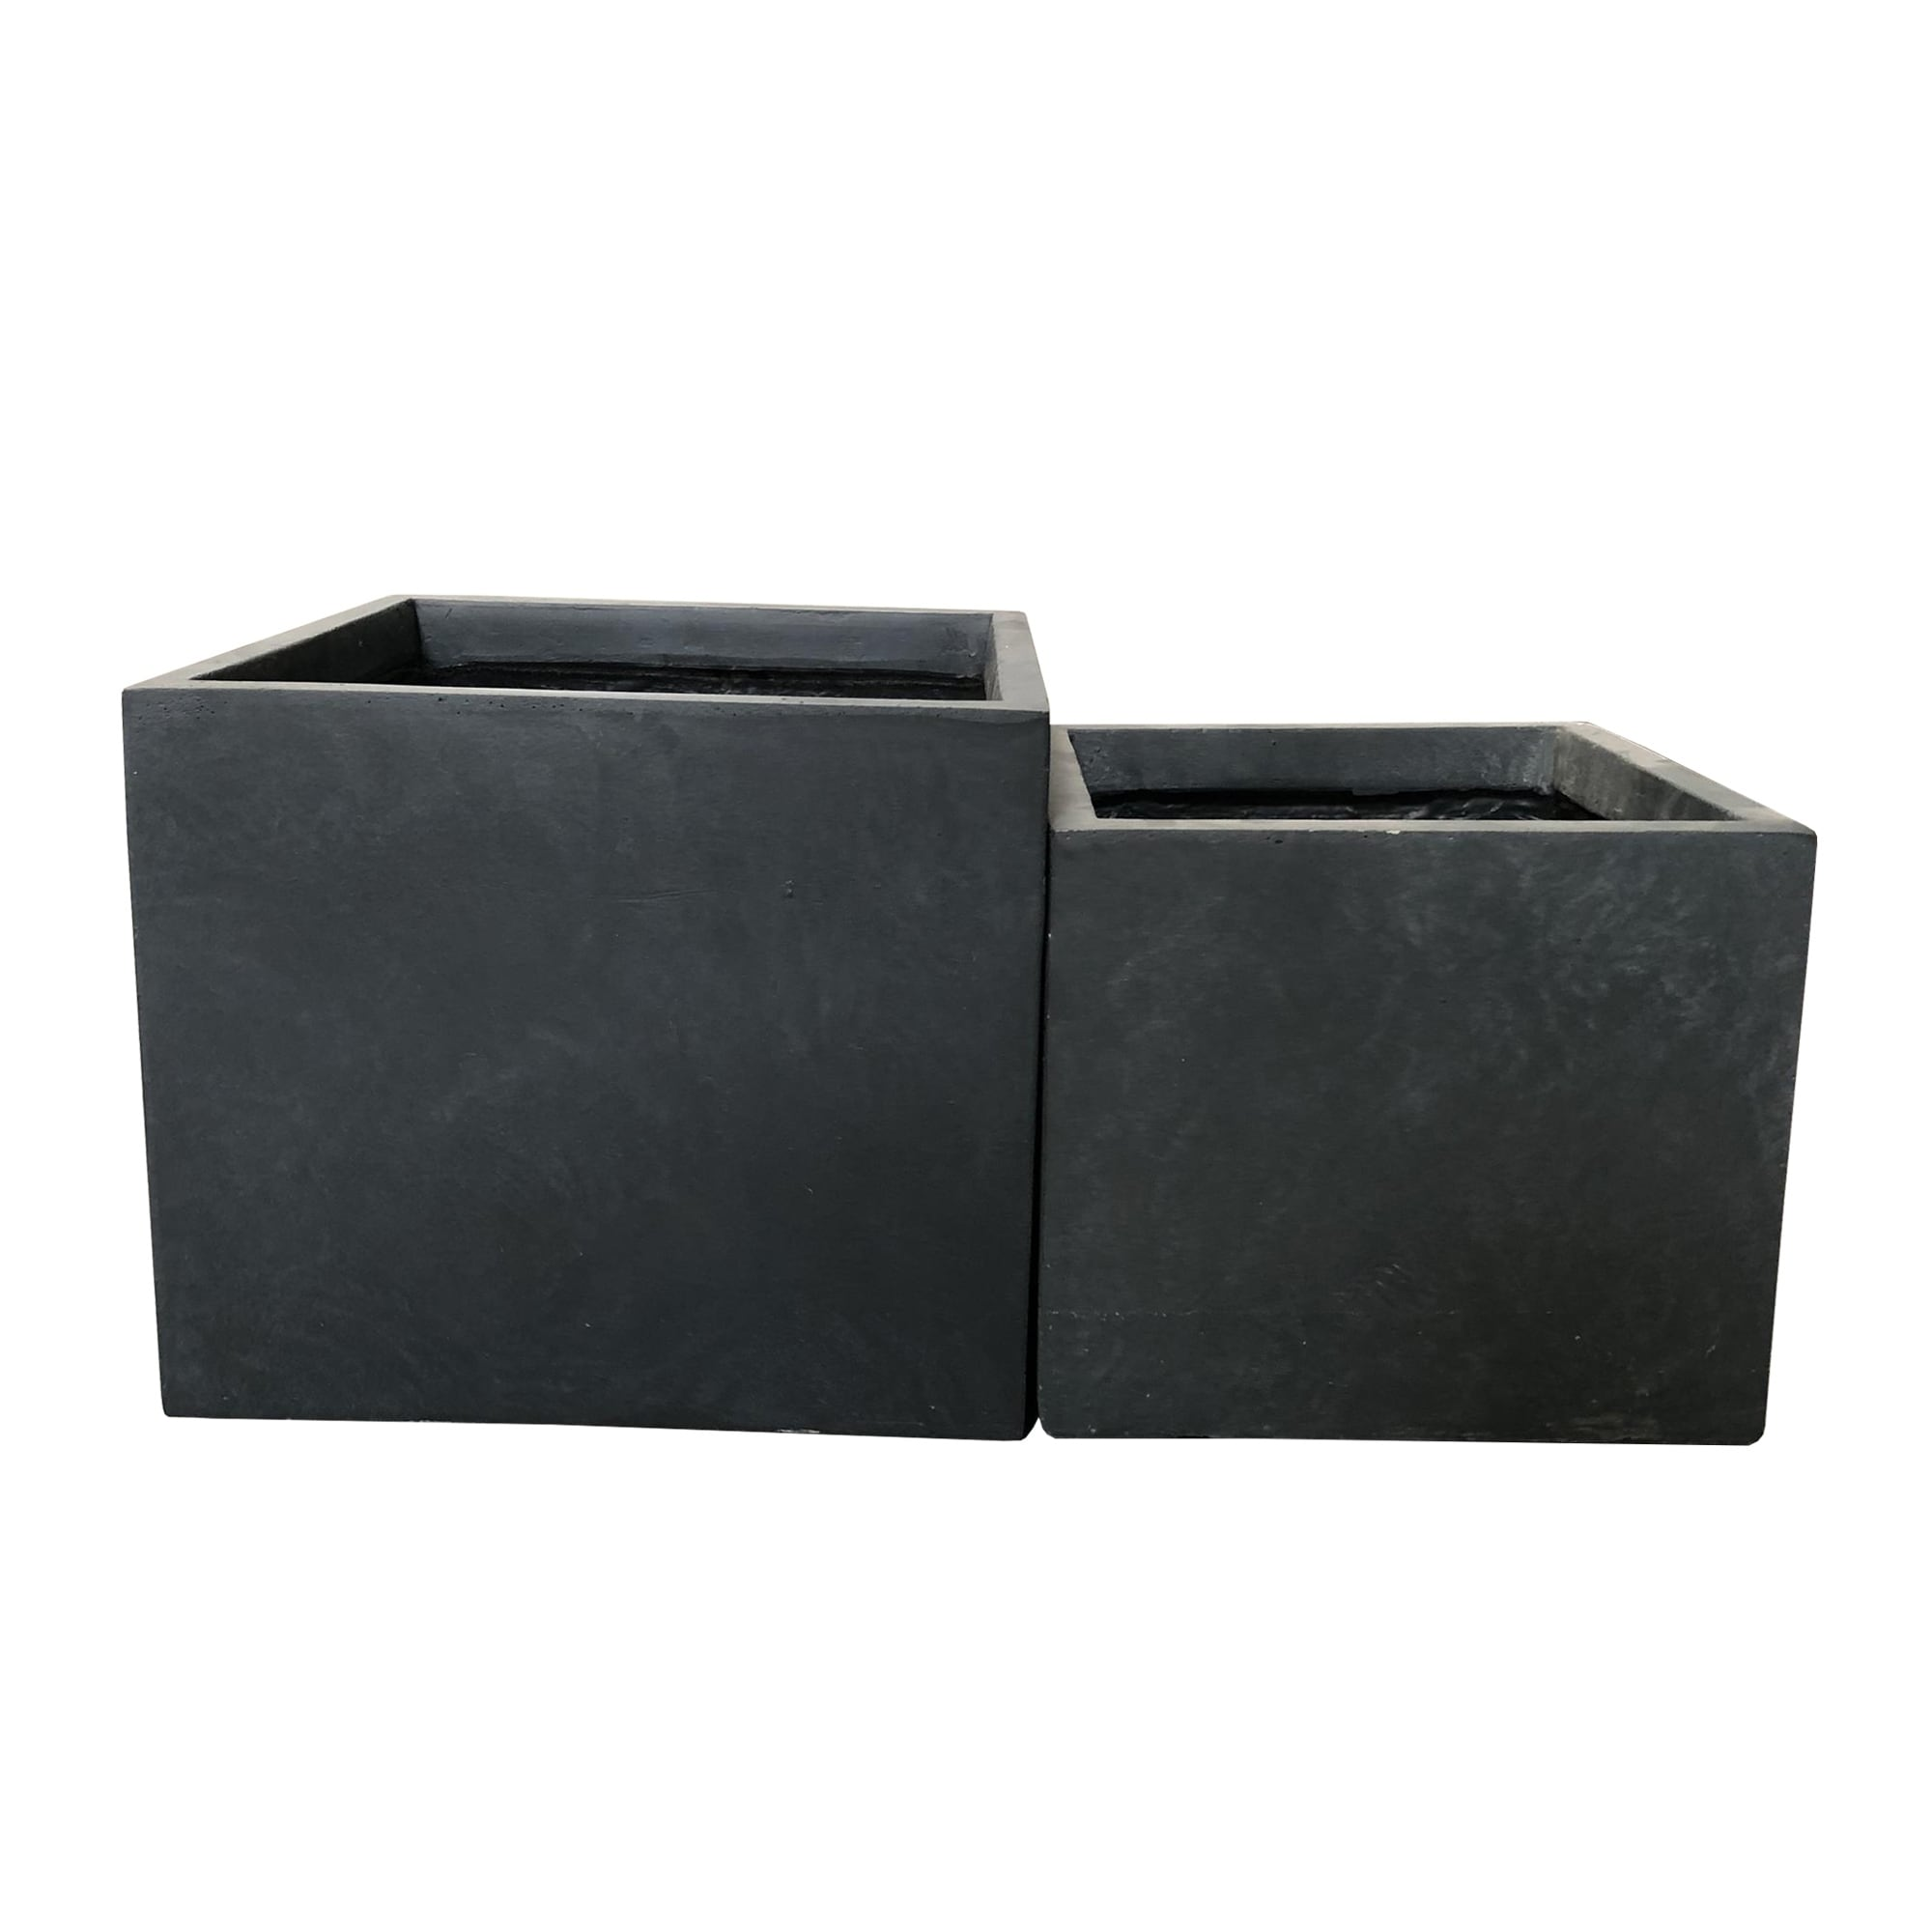 Planter Box | Shop Online at Overstock